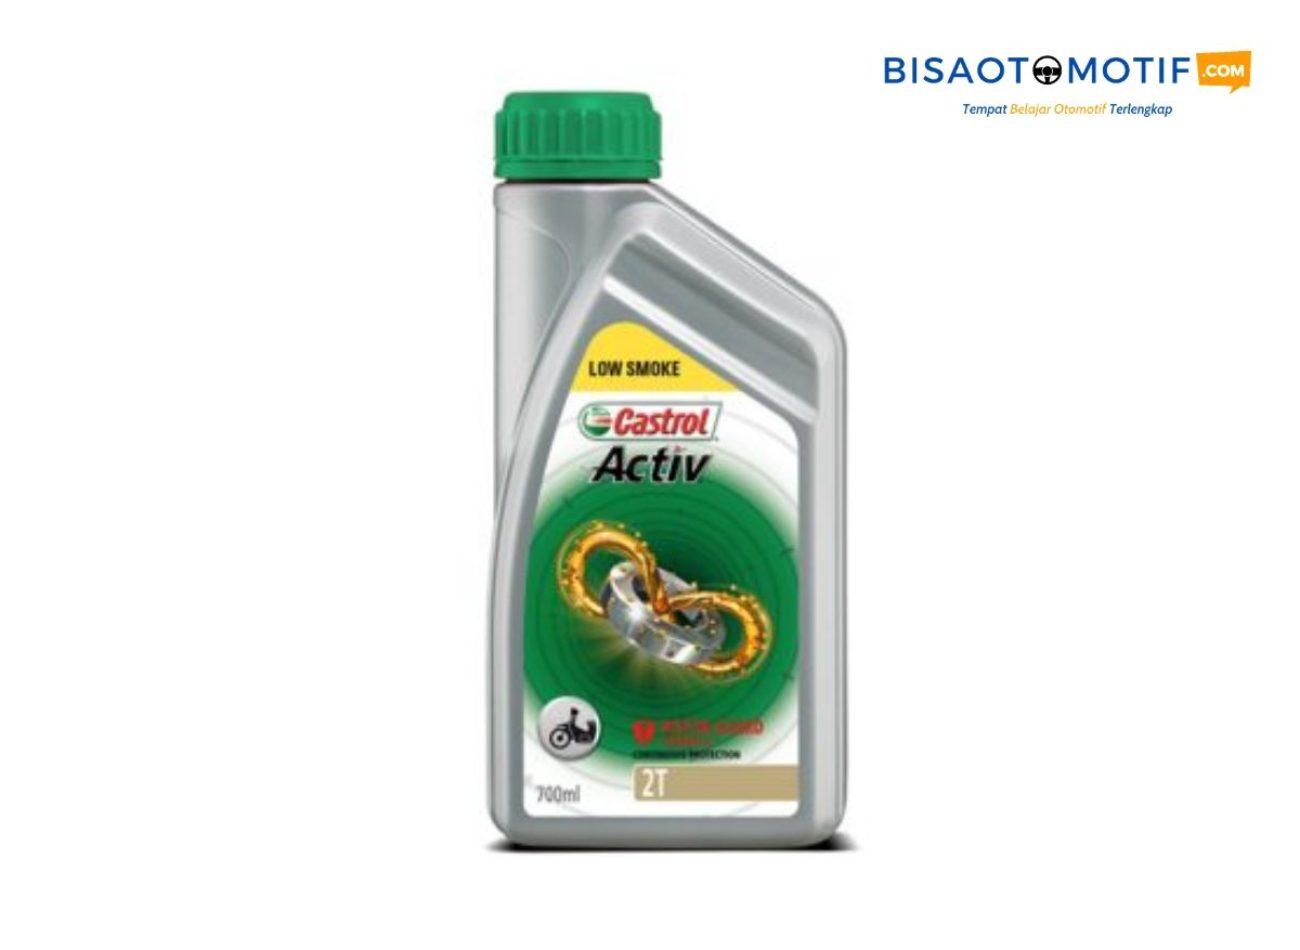 castrol active 2t